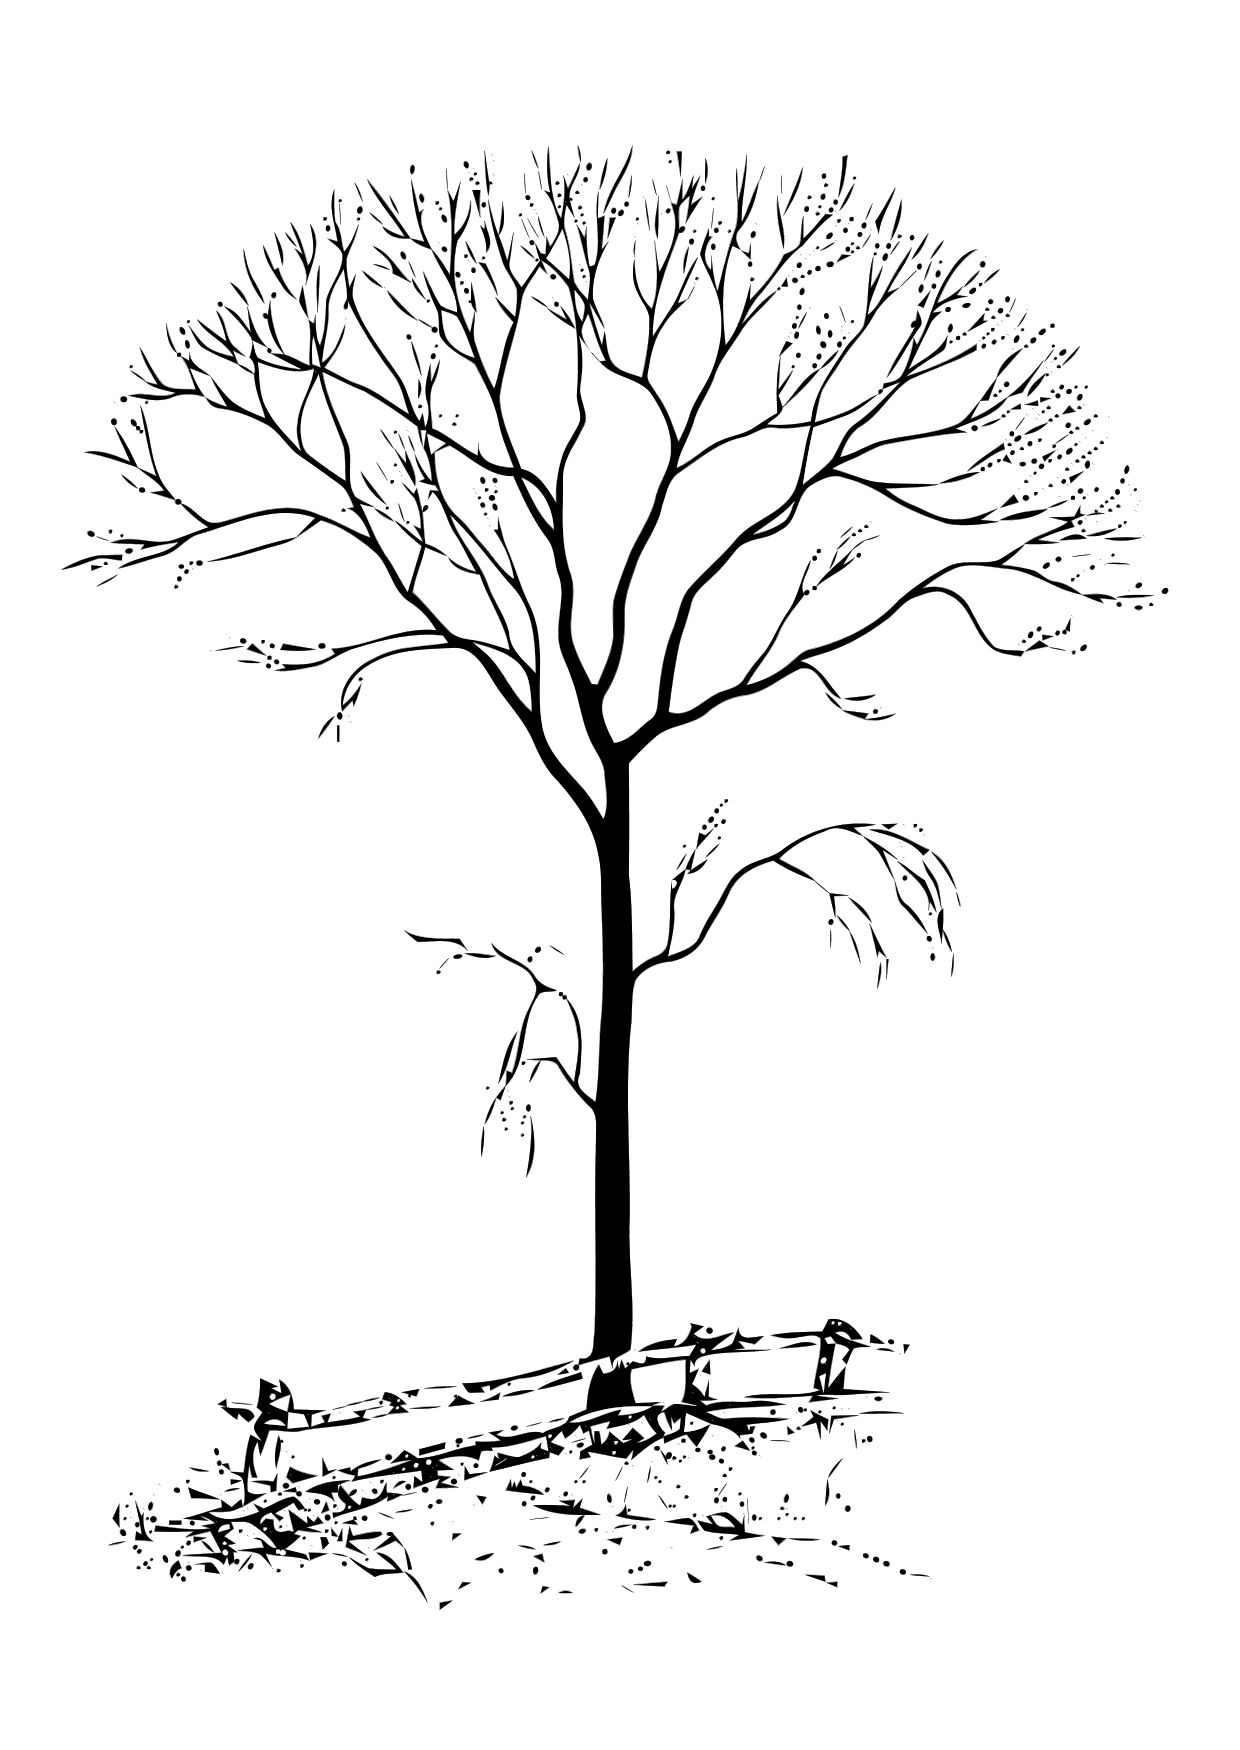 coloring tree for kids coloring tree for kids kids for tree coloring